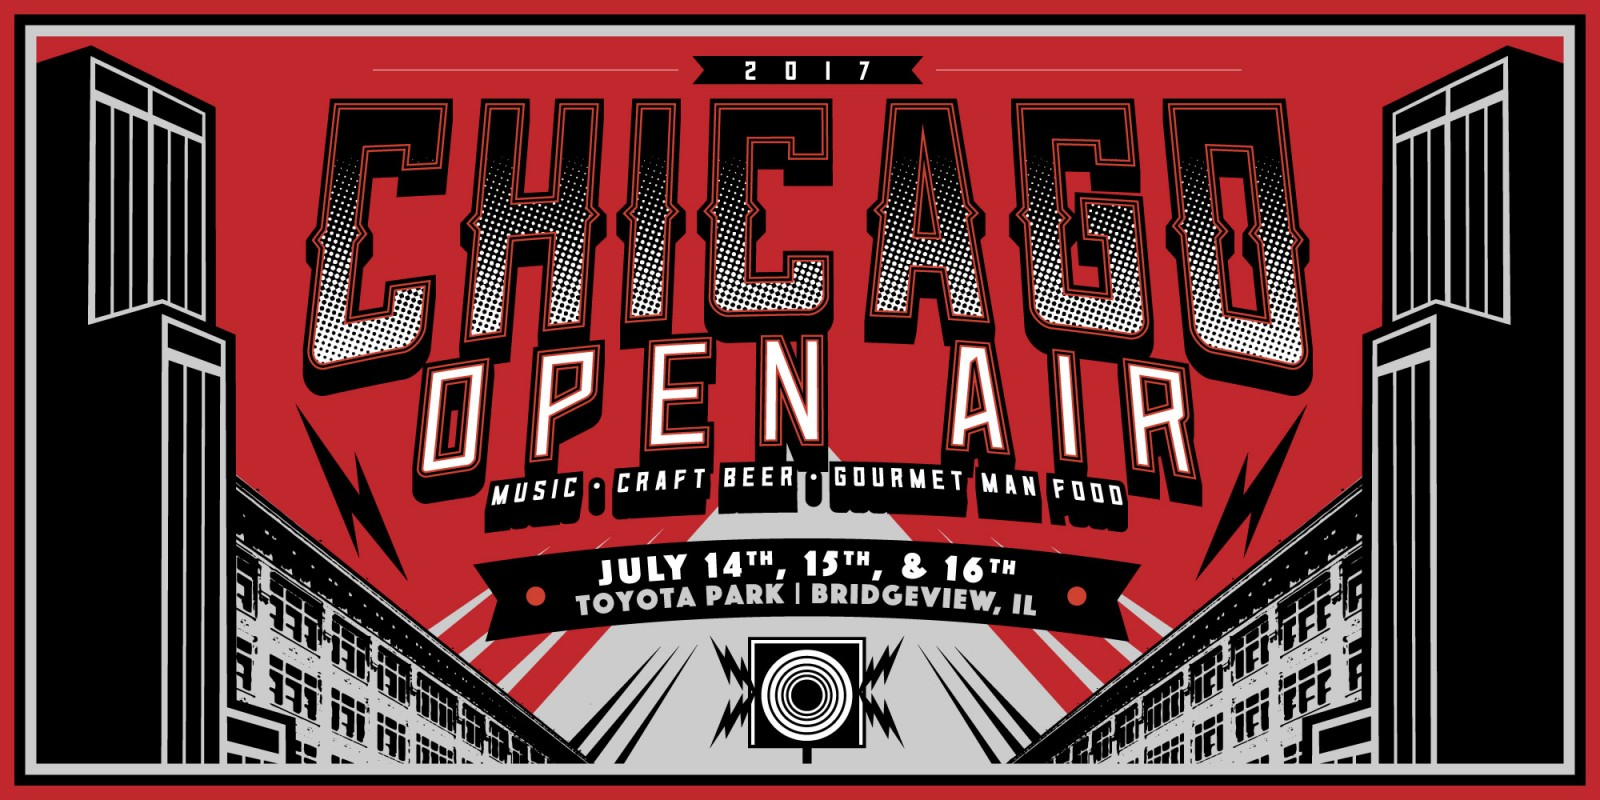 2017 Web Chicago Open Air Music Event Hero Image